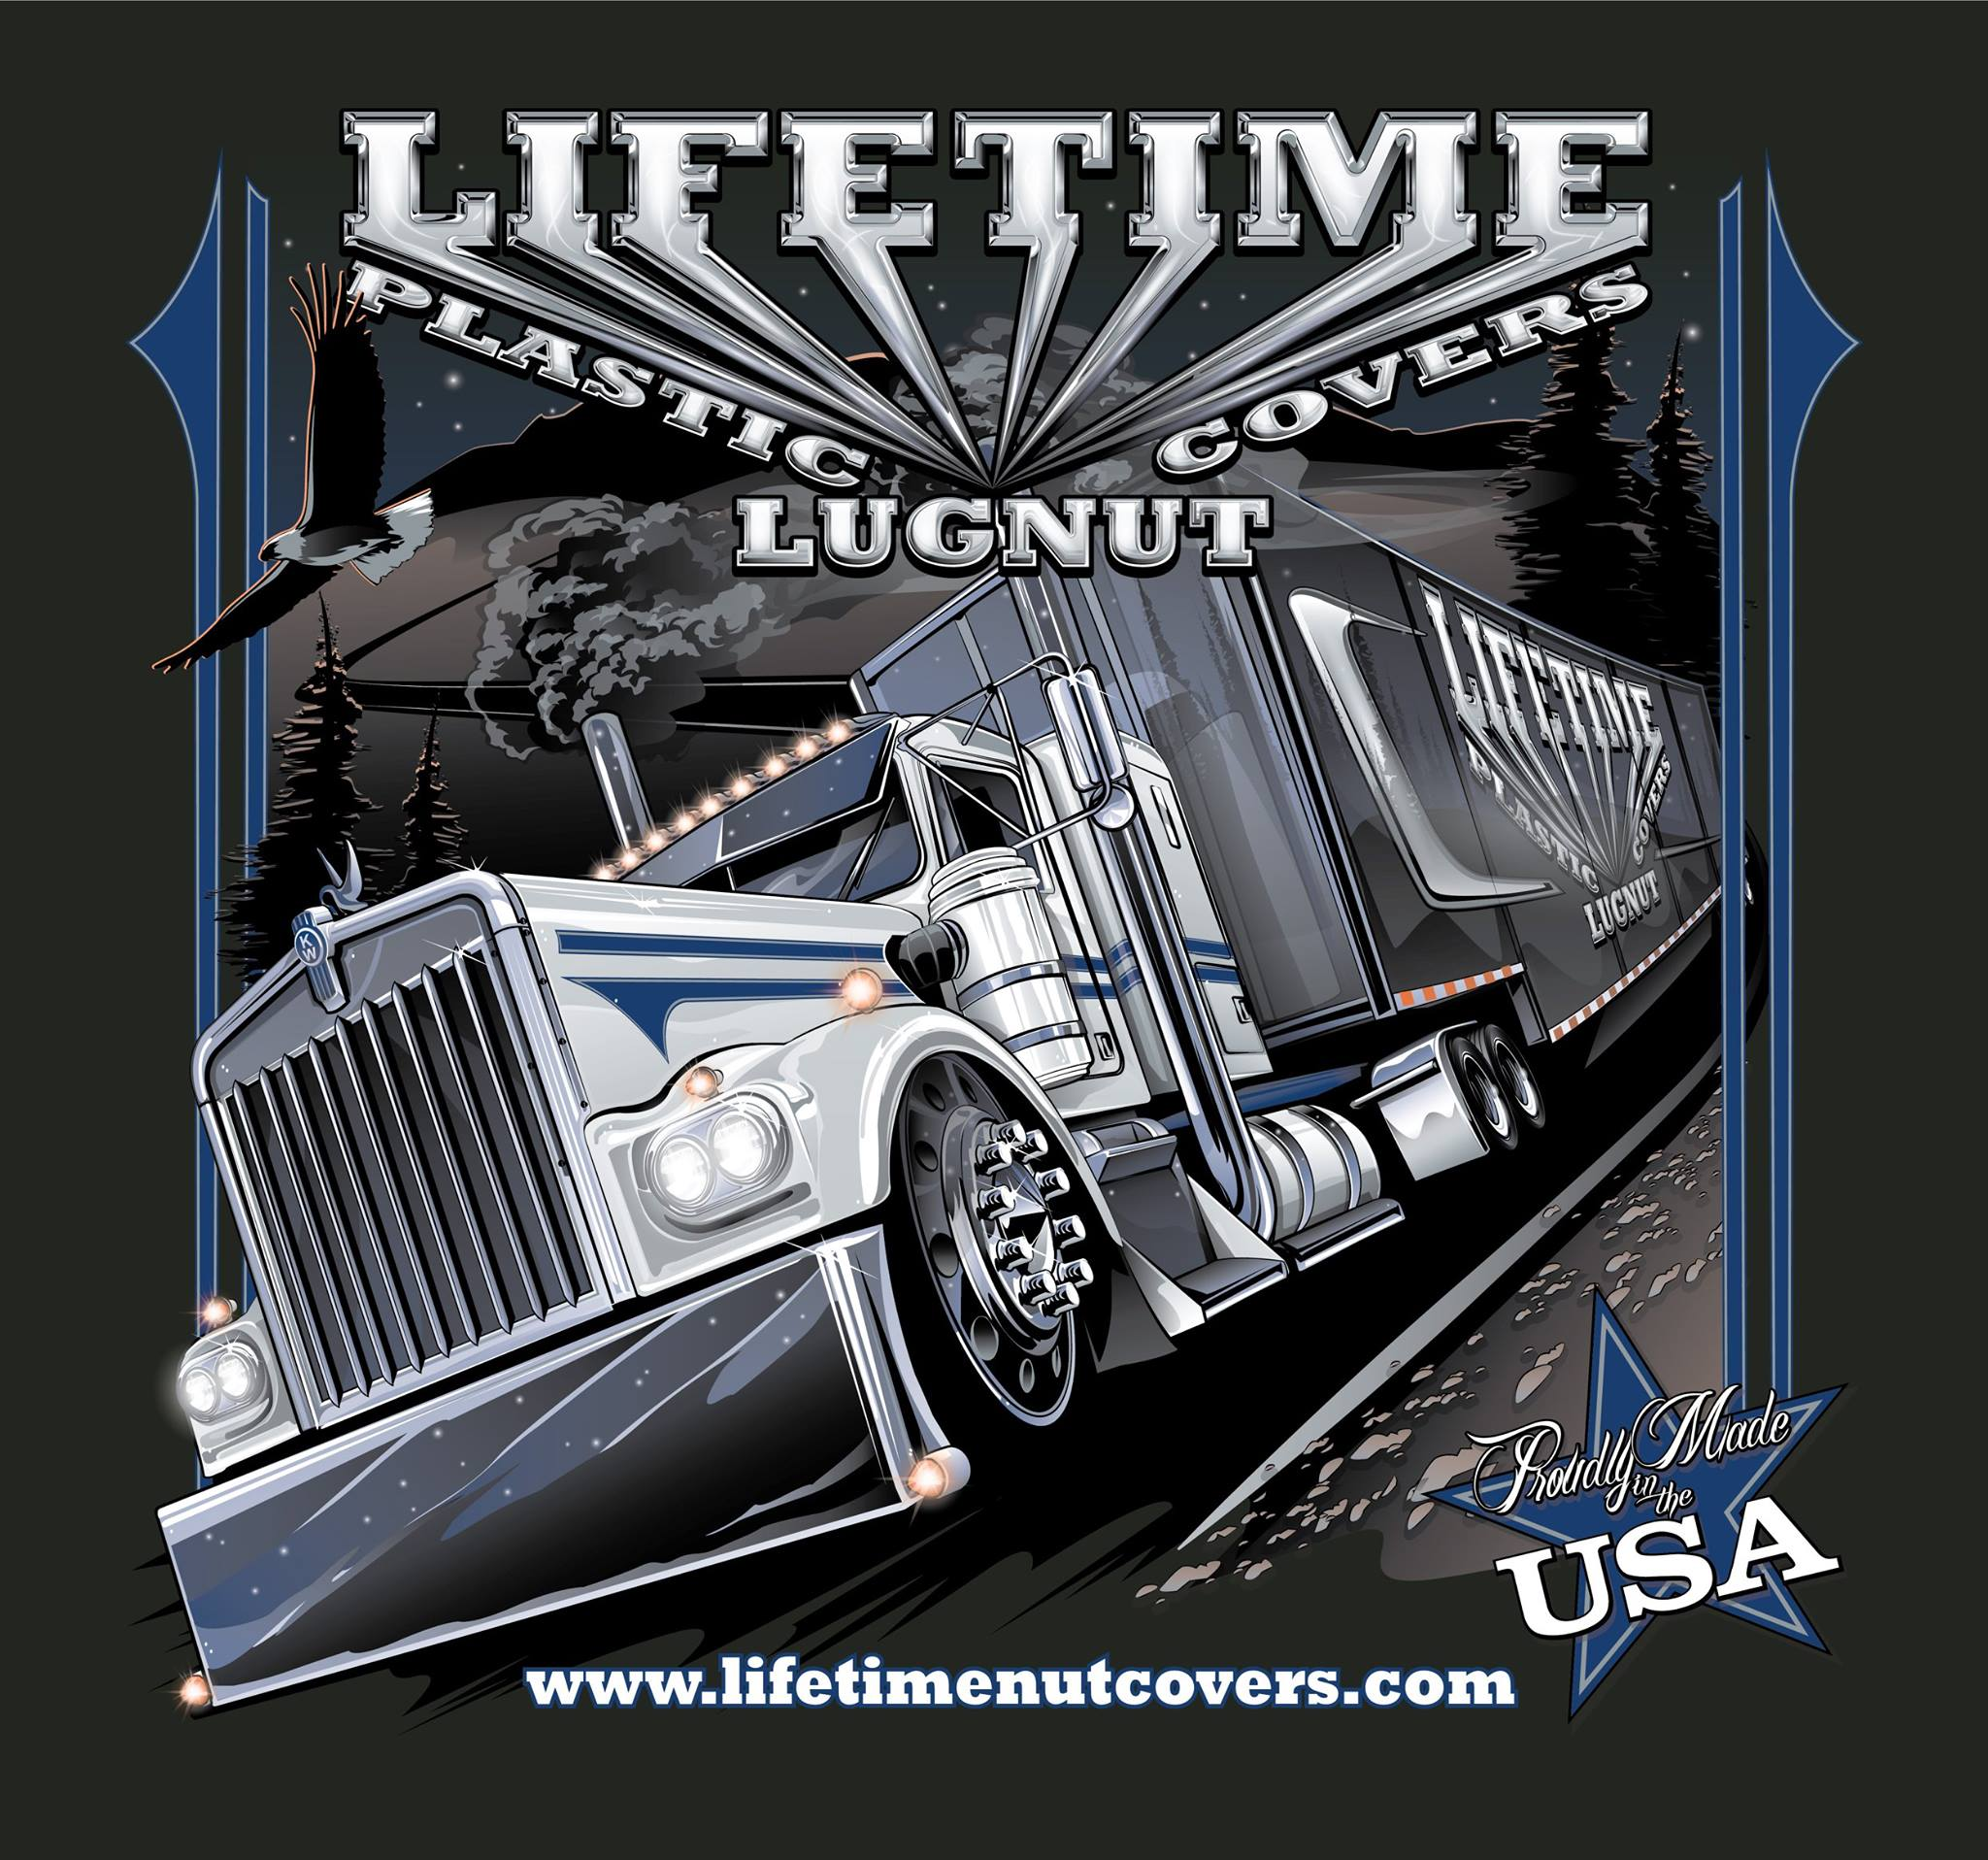 Lifetime Nut Covers